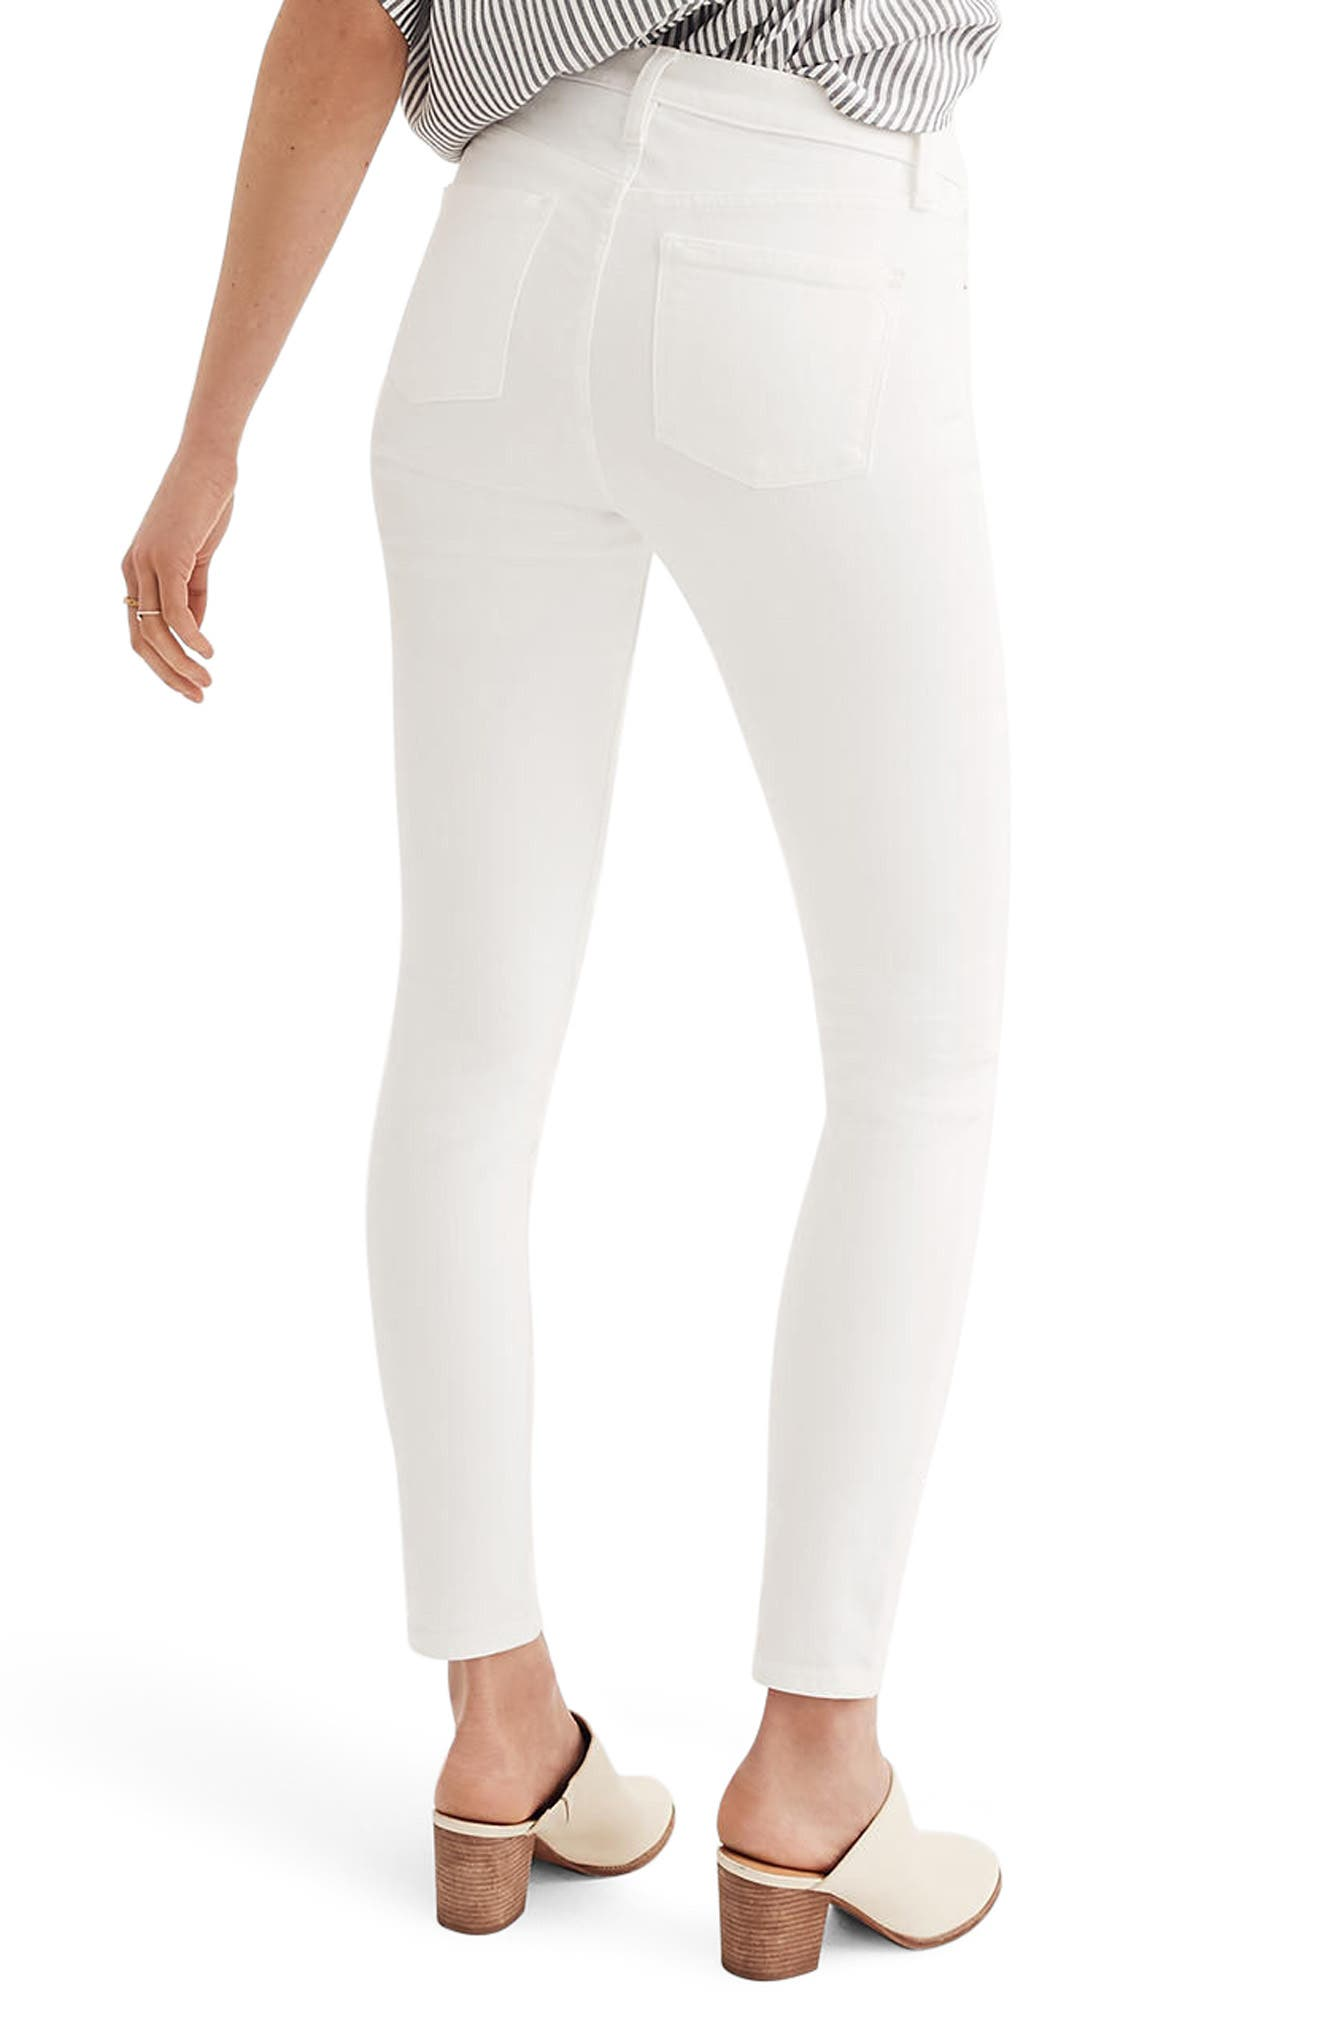 MADEWELL, 9-Inch High Waist Skinny Jeans, Alternate thumbnail 2, color, PURE WHITE